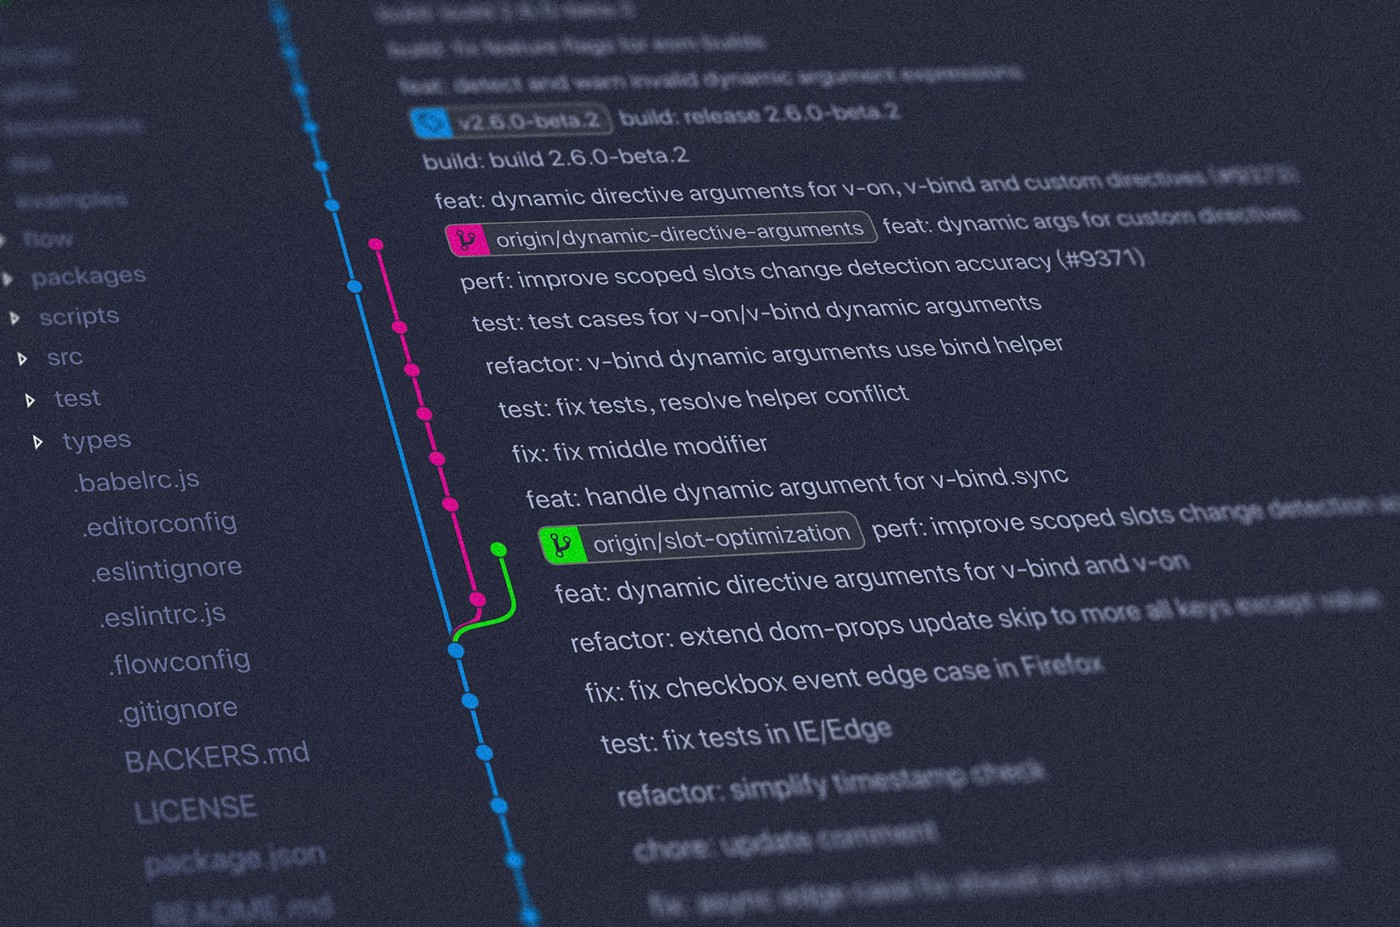 Git commit history as featured image